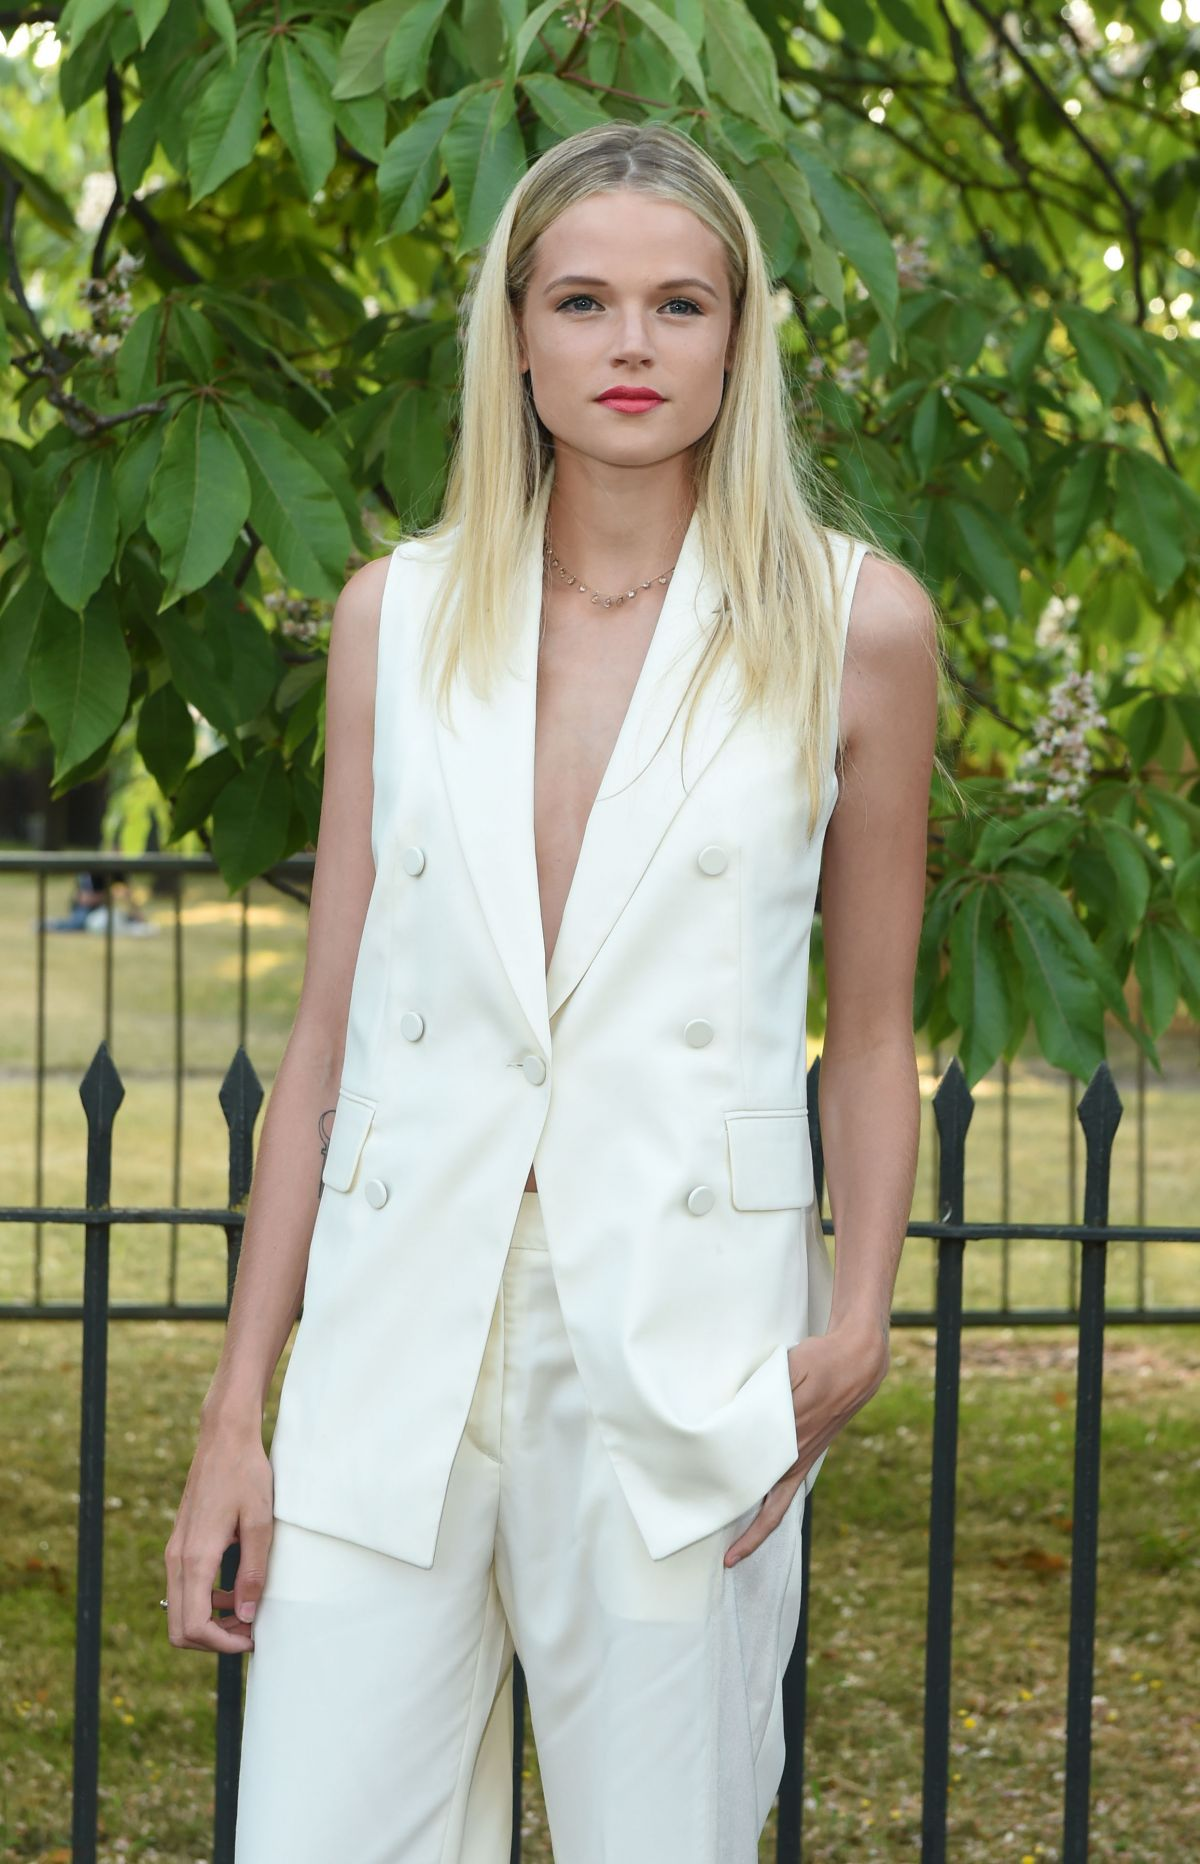 GABRIELLA WILDE at Serpentine Gallery Summer Party in London